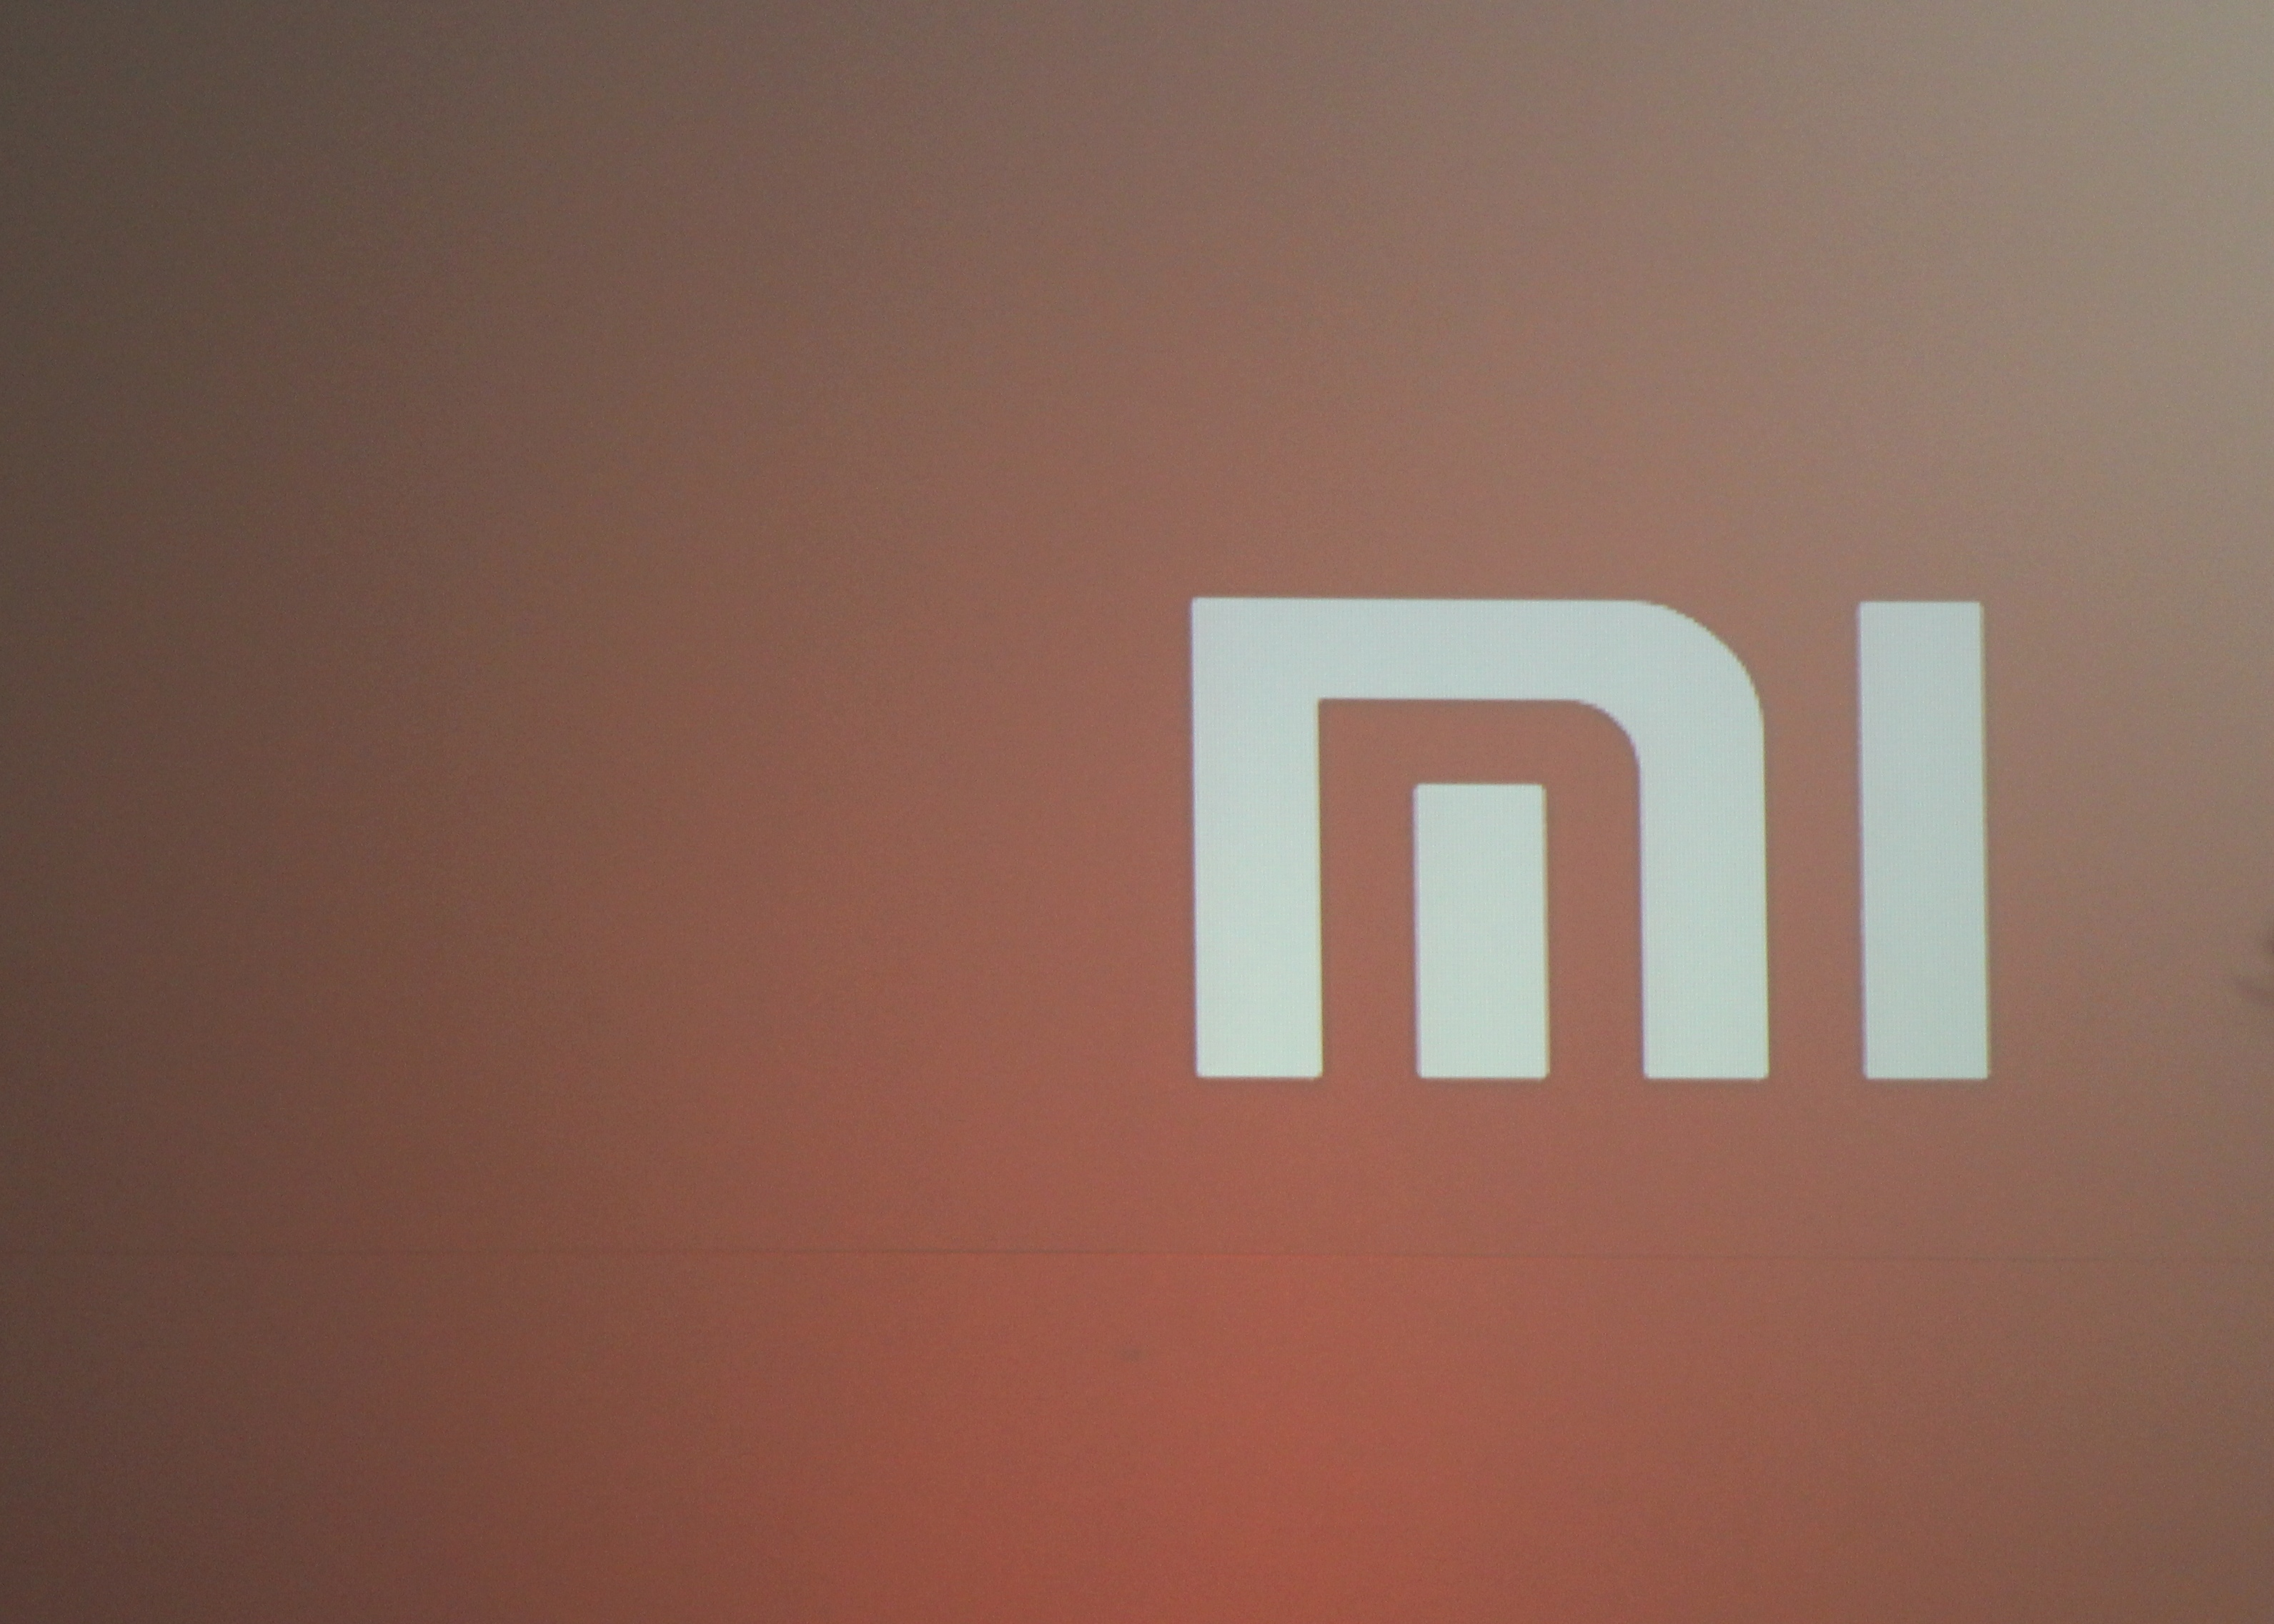 xiaomi doubles down in india   vr world